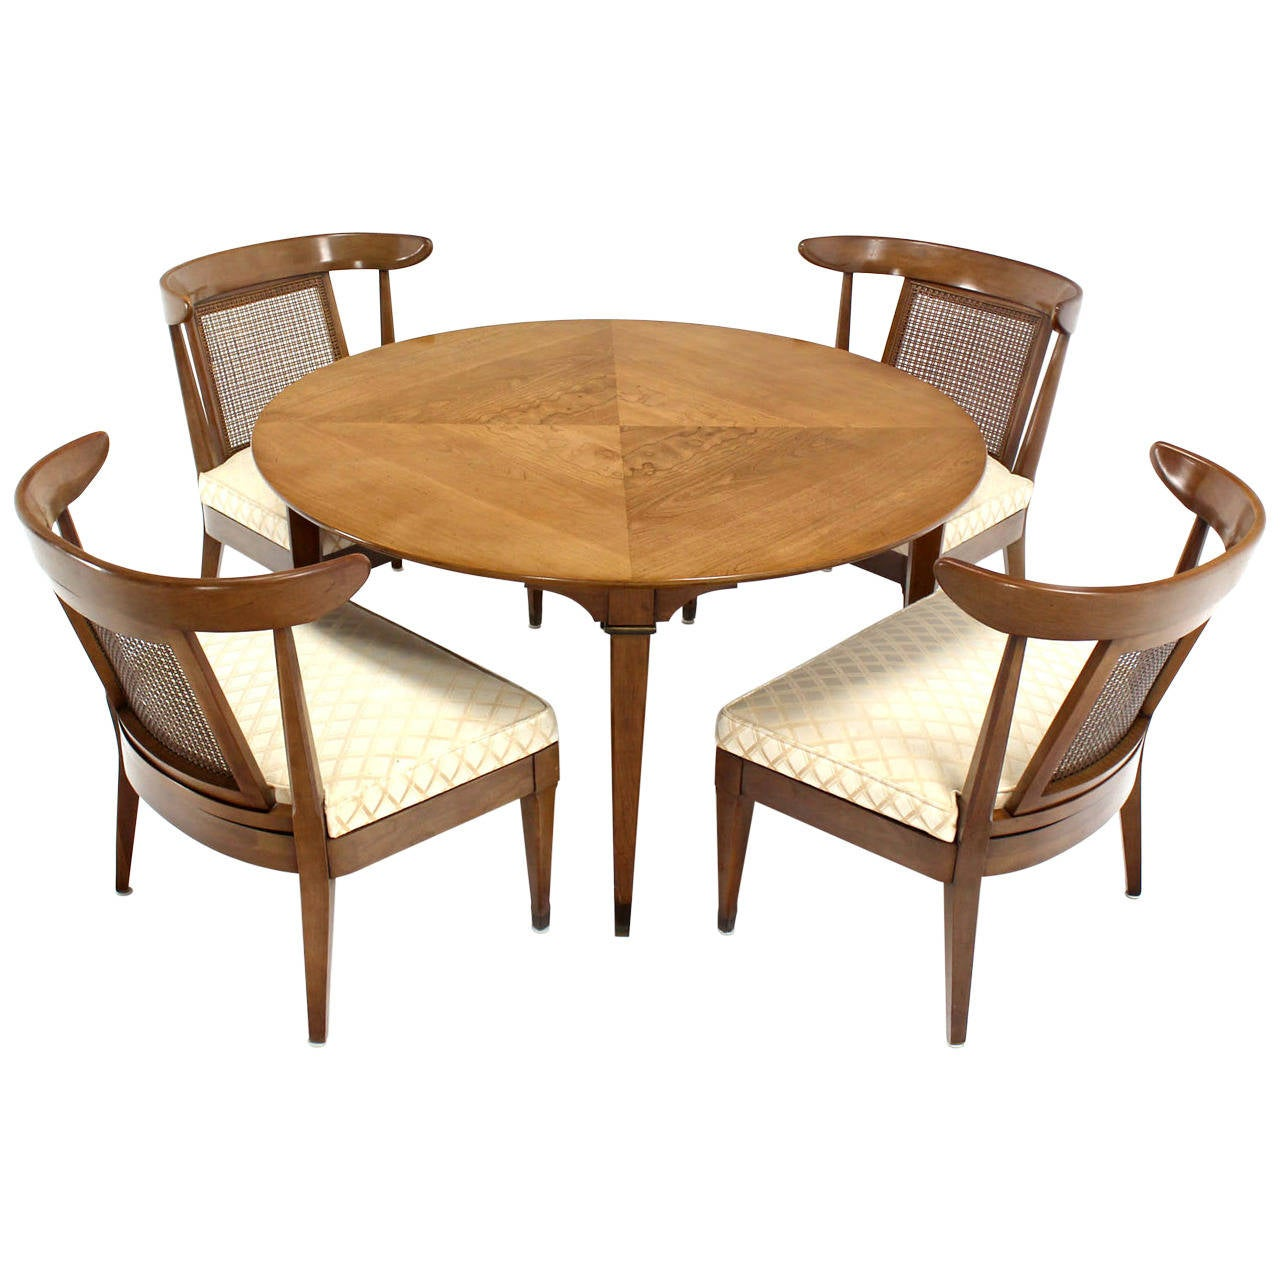 Mid century modern bridge game table with four chairs set for Dining room table for 4